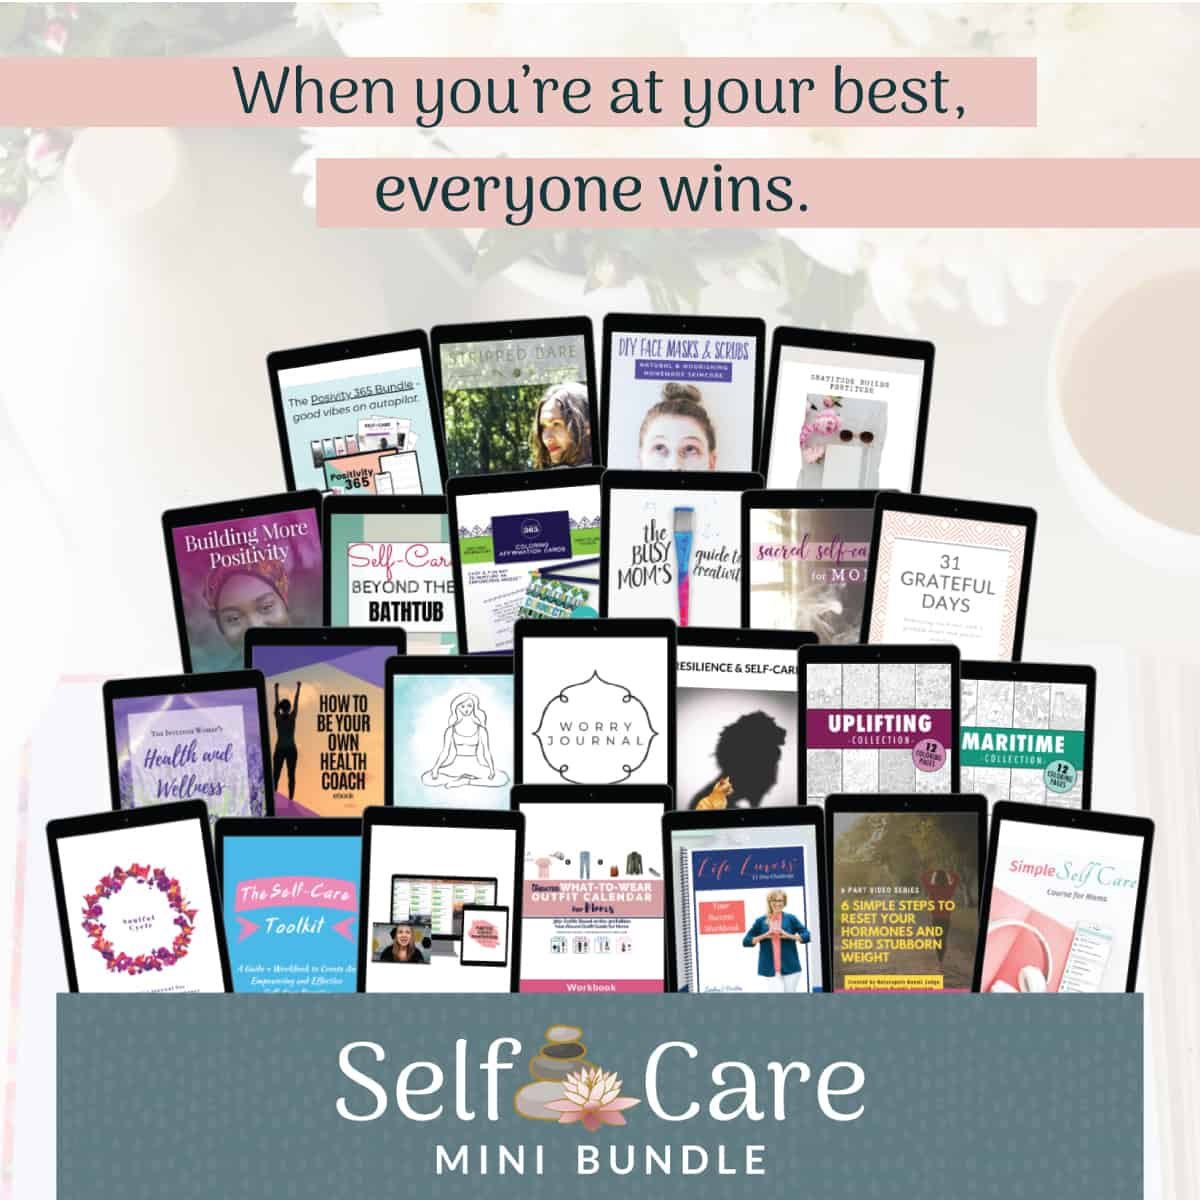 Images of resources in the Self Care Mini Bundle with text overlay that says: When you're at your best, everyone wins.